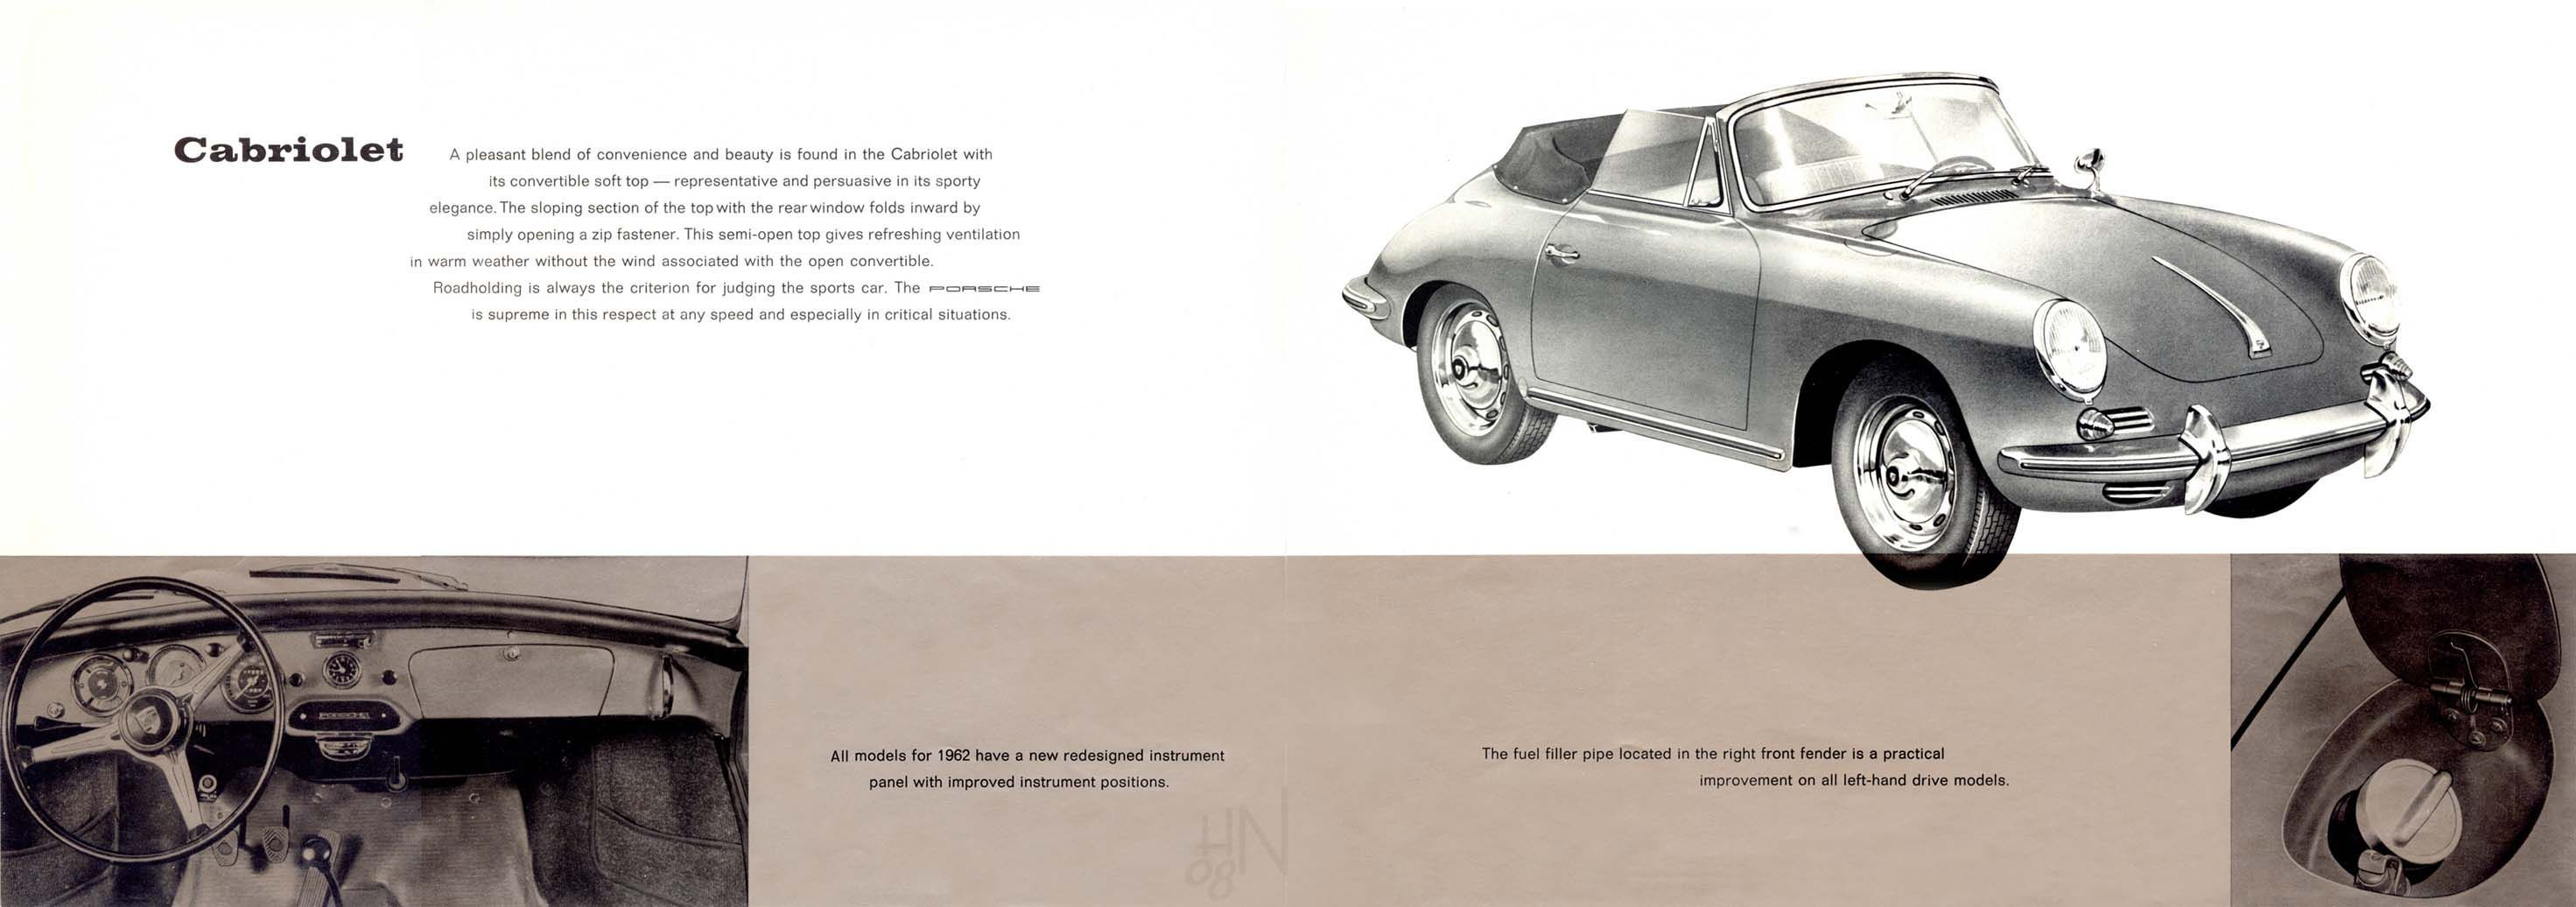 1962 Porsche 356B U.S. brochure pages 6 & 7